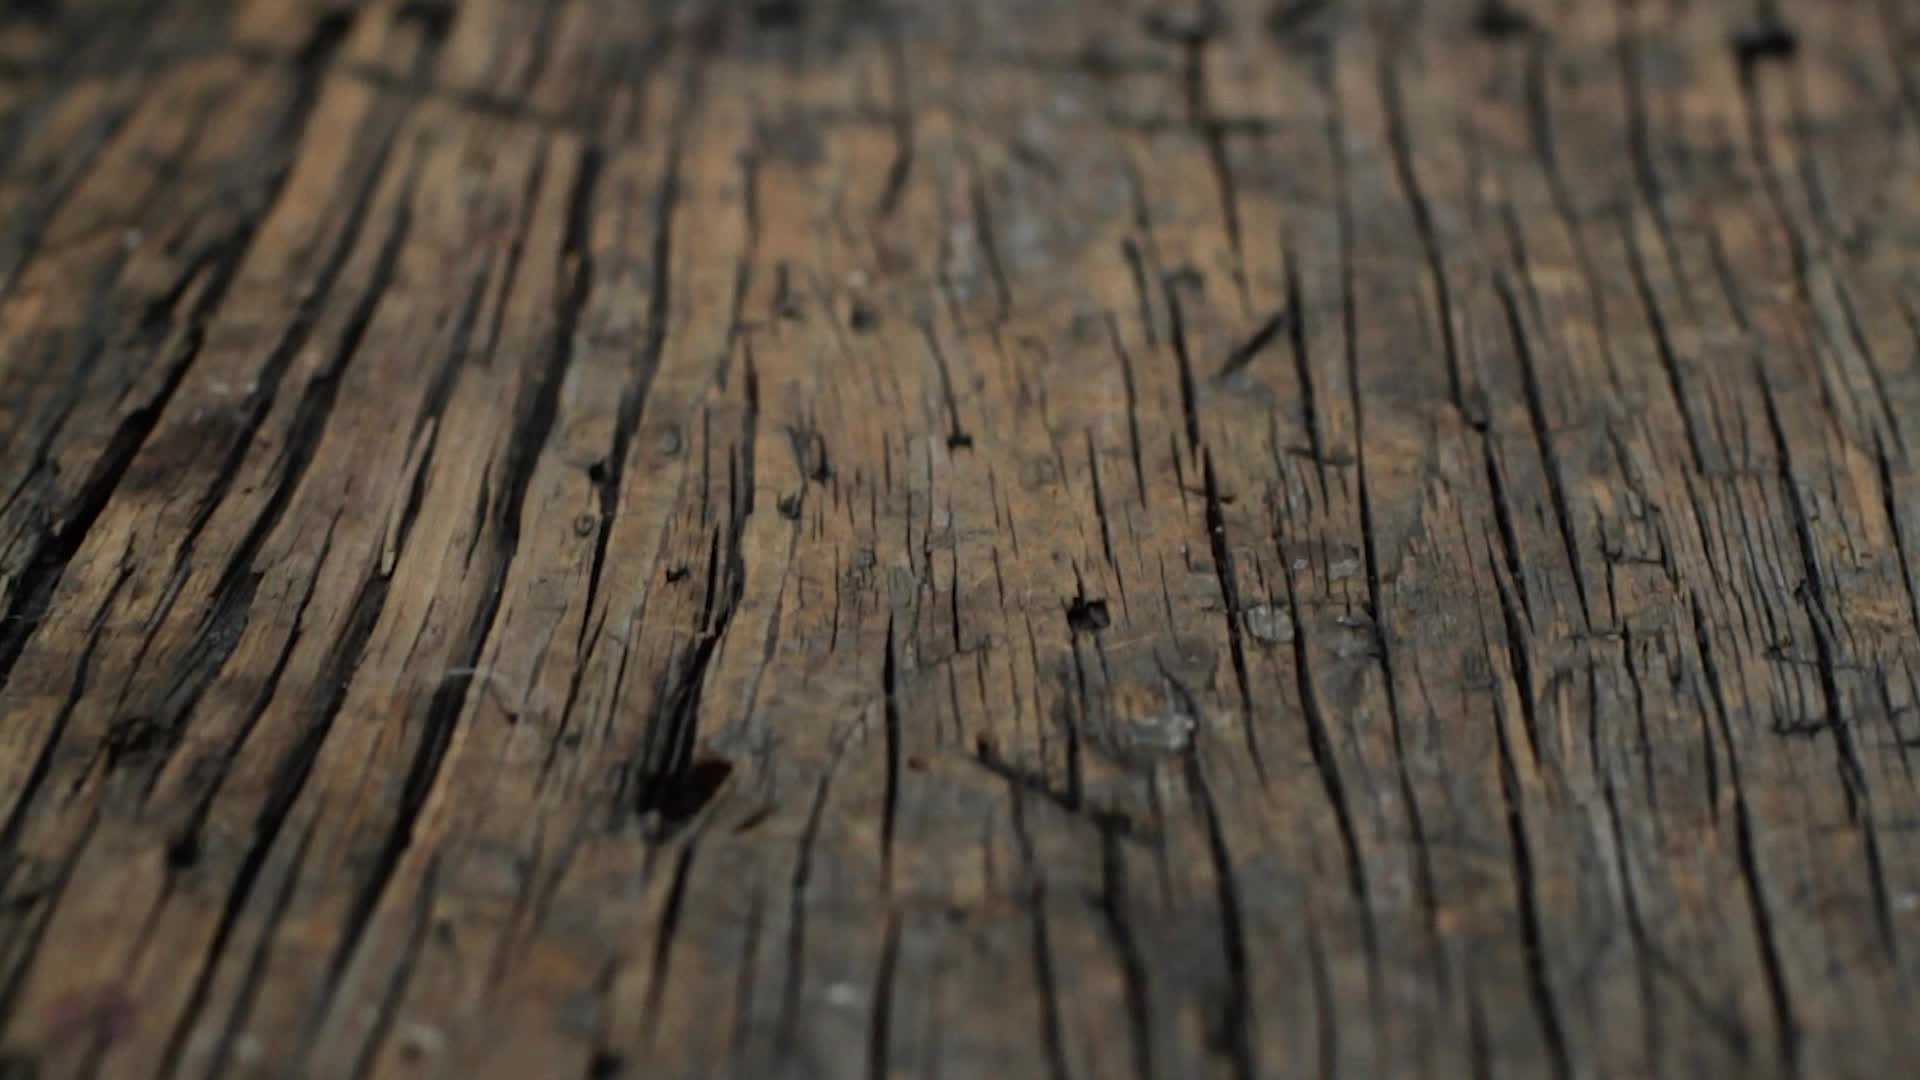 Video: Primitive driftwood texture - rough wood surface - 1080p slow ...